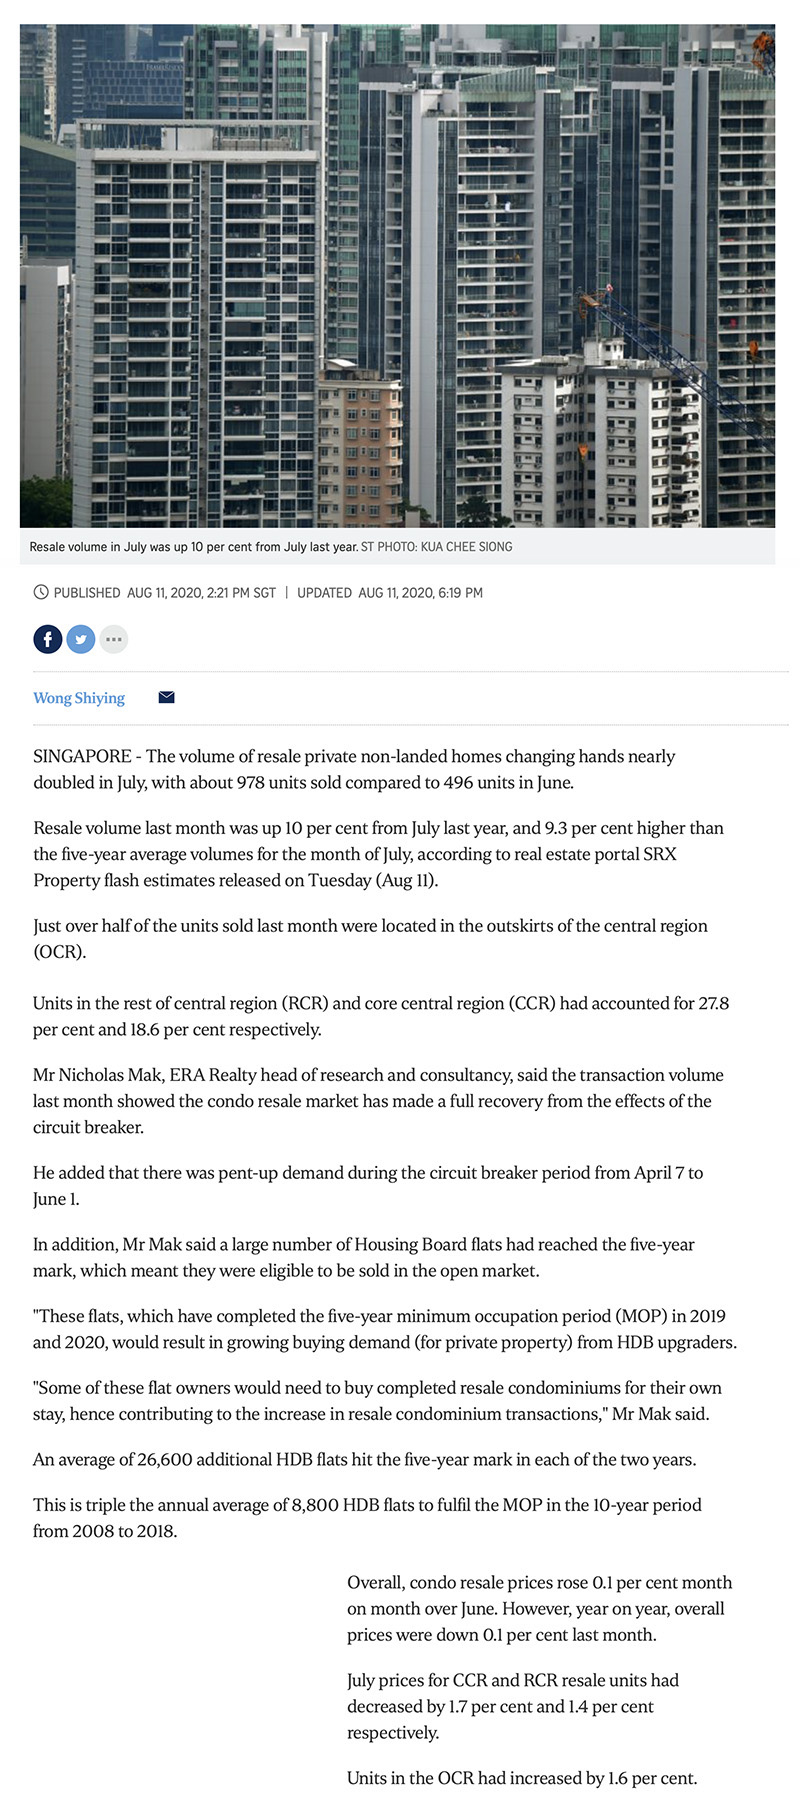 One Pearl Bank - Condo resales rebound after circuit breaker; July volume nearly double that of June 1